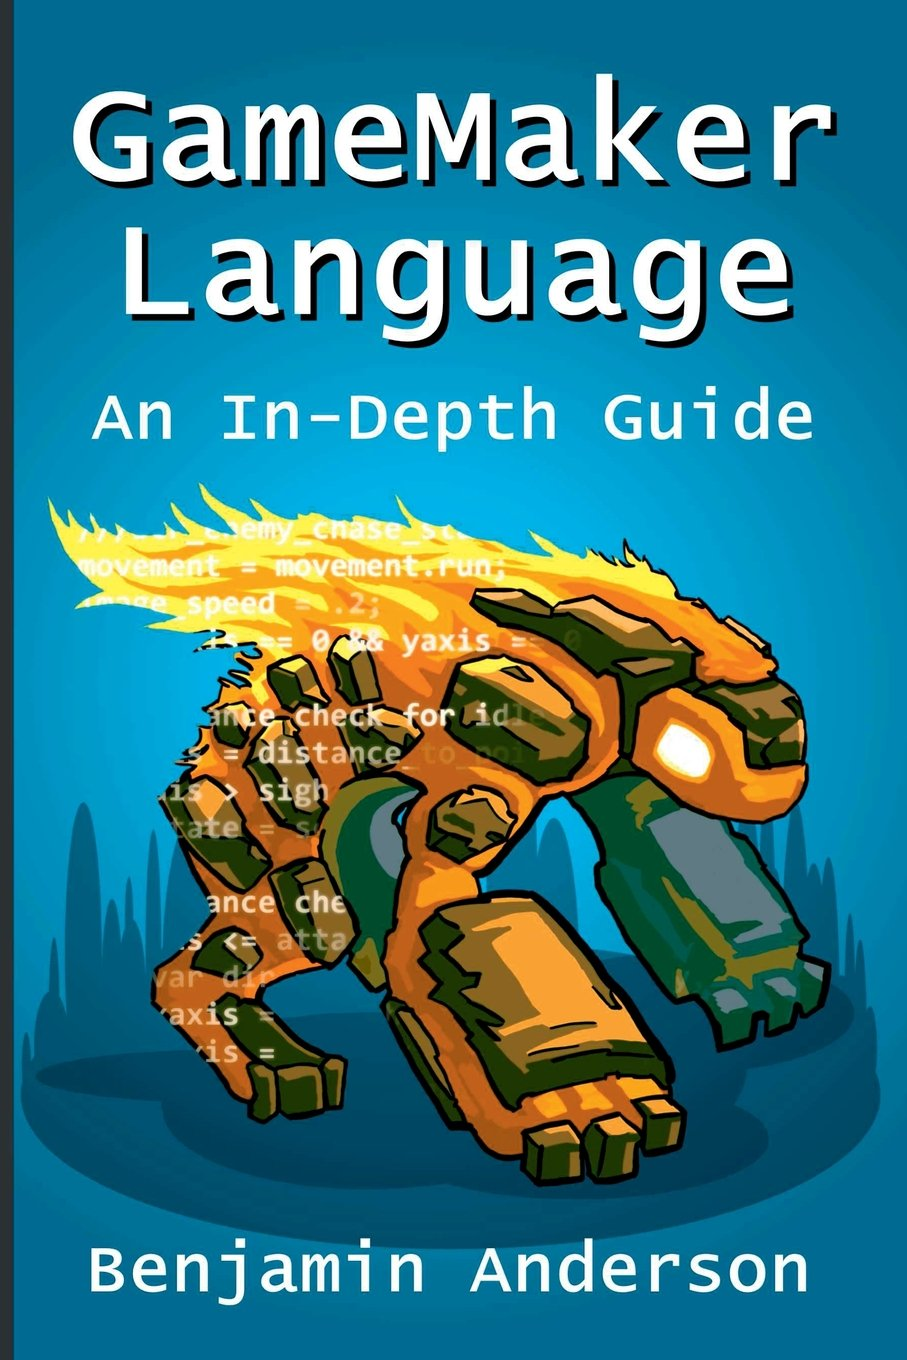 Gamemaker language an indepth guide soft cover benjamin gamemaker language an indepth guide soft cover benjamin anderson 9781329419568 amazon books baditri Choice Image